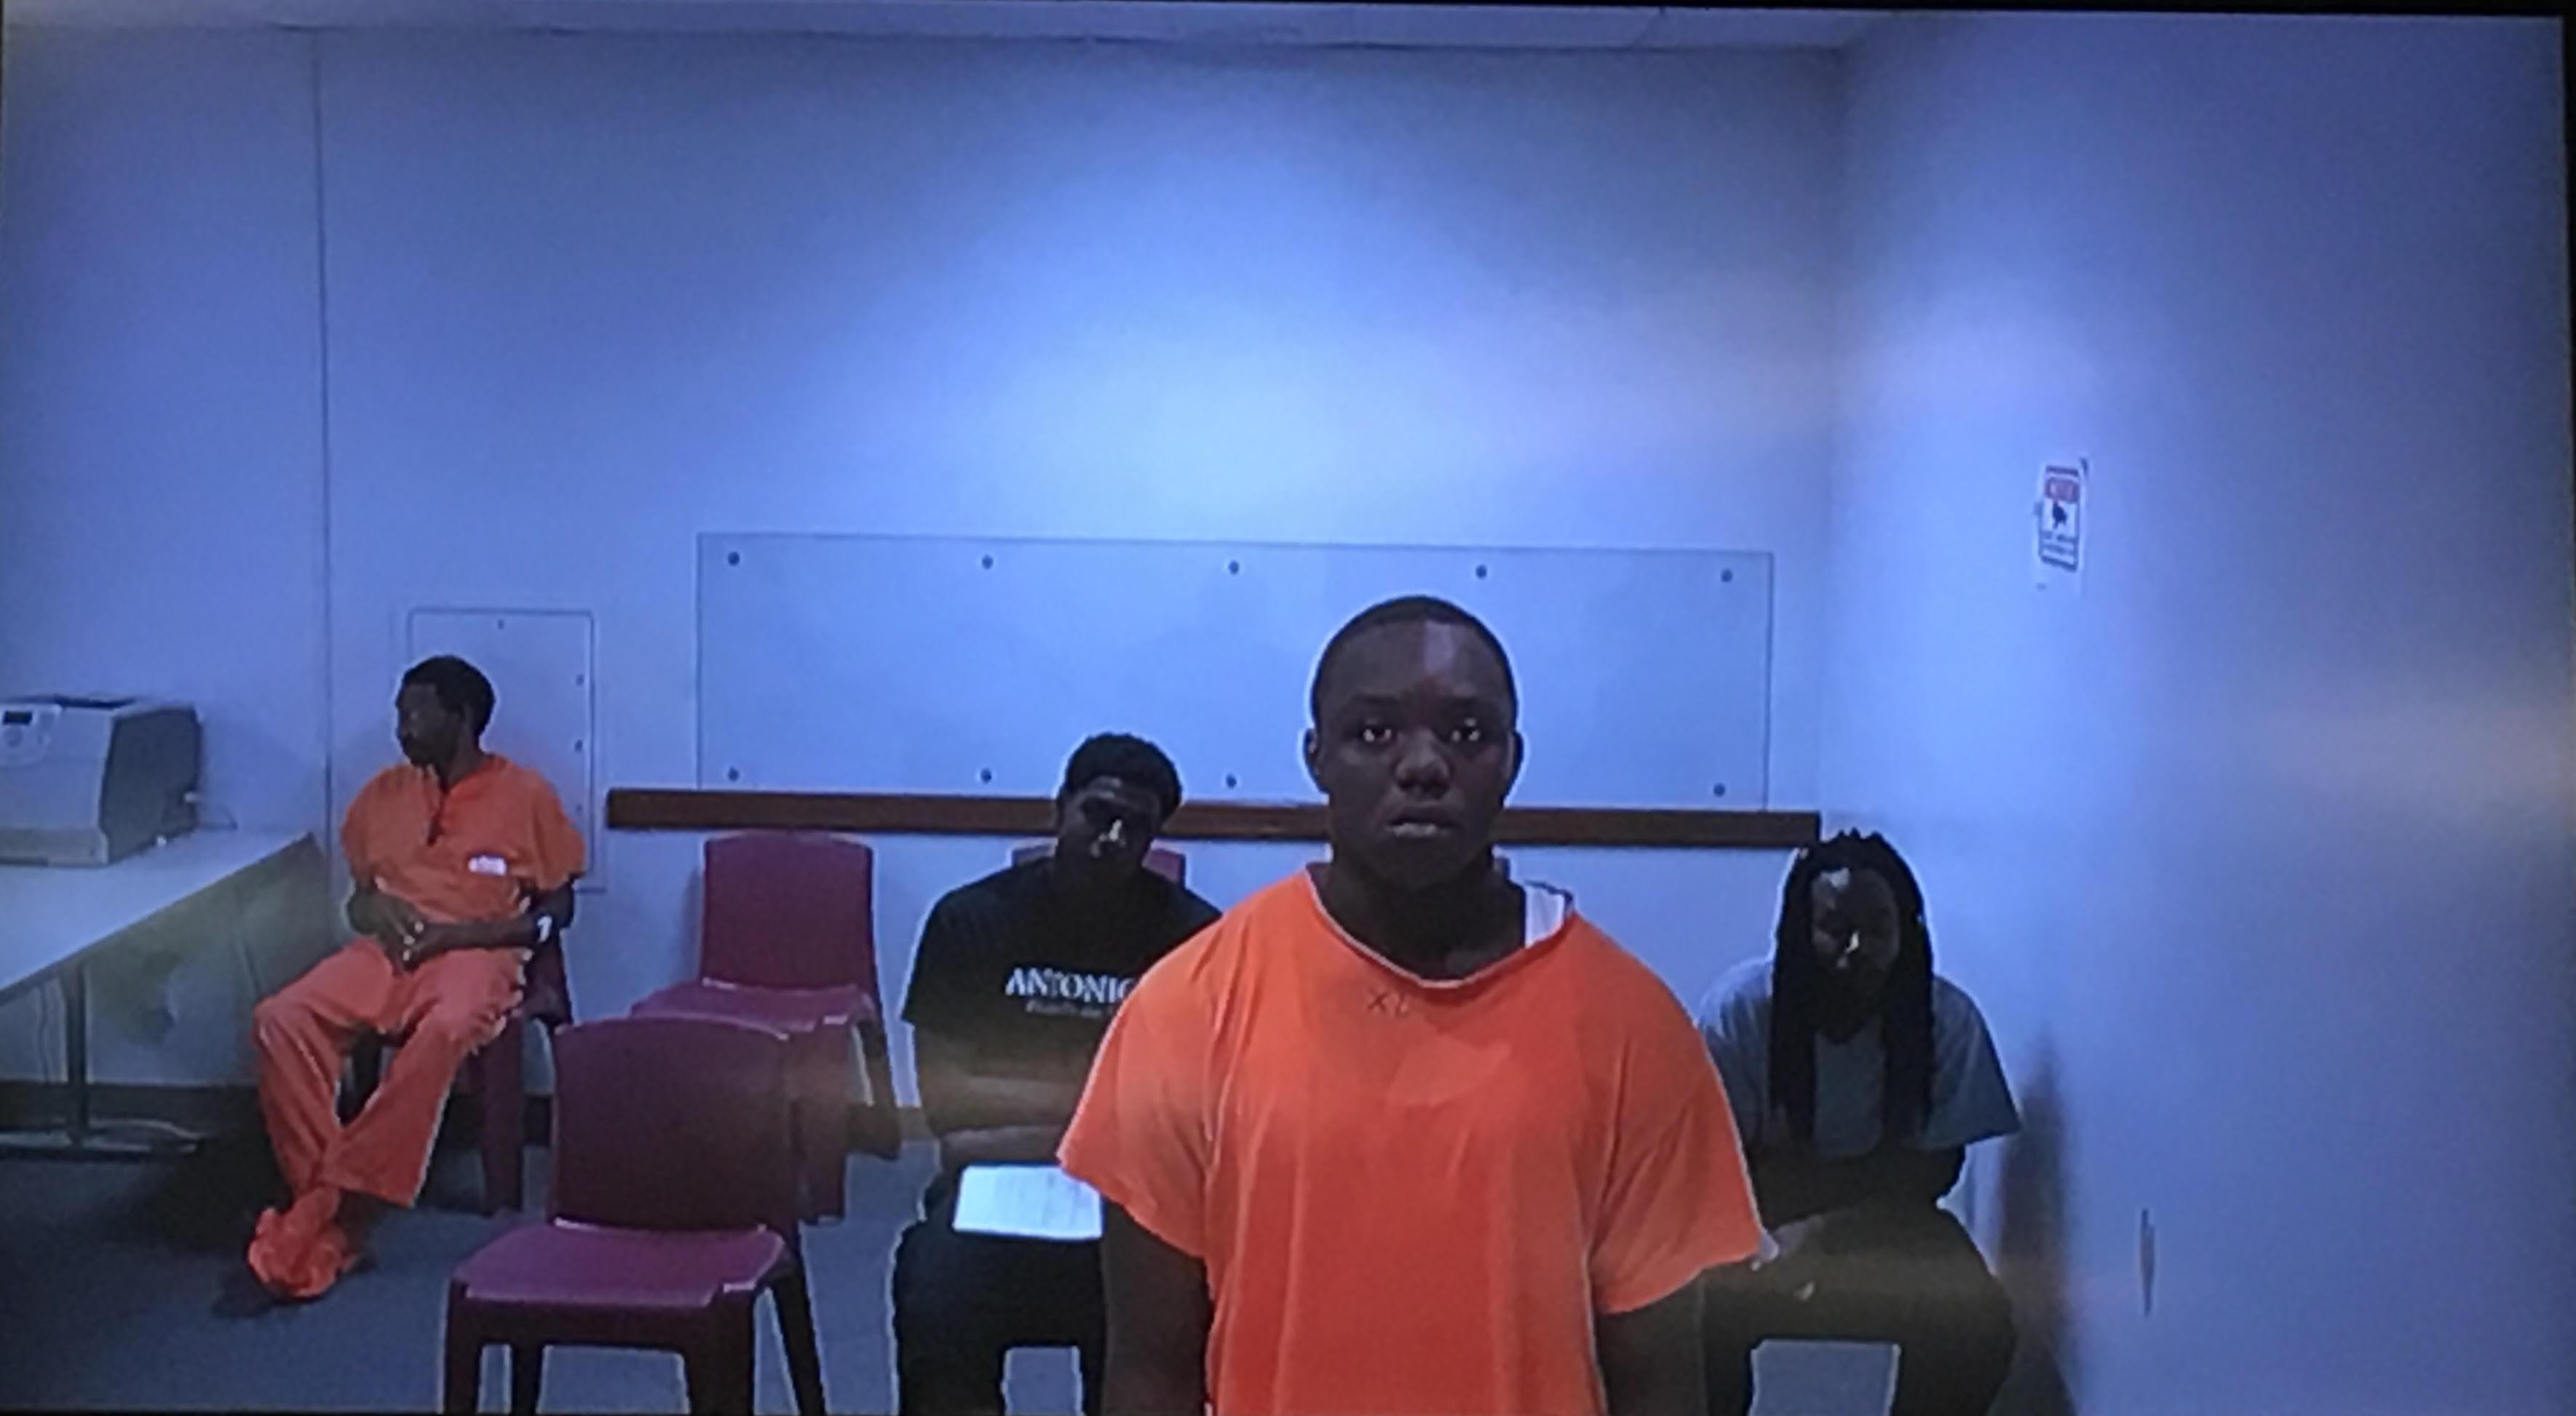 Robbie Patton, 18-years-old at the time, appears on video from the Department of Corrections during his arraignment at the Champaign County Courthouse Friday, Sept. 30, 2016. A jury found Patton guilty of first-degree murder and three counts of aggravated battery with a firearm on Thursday.